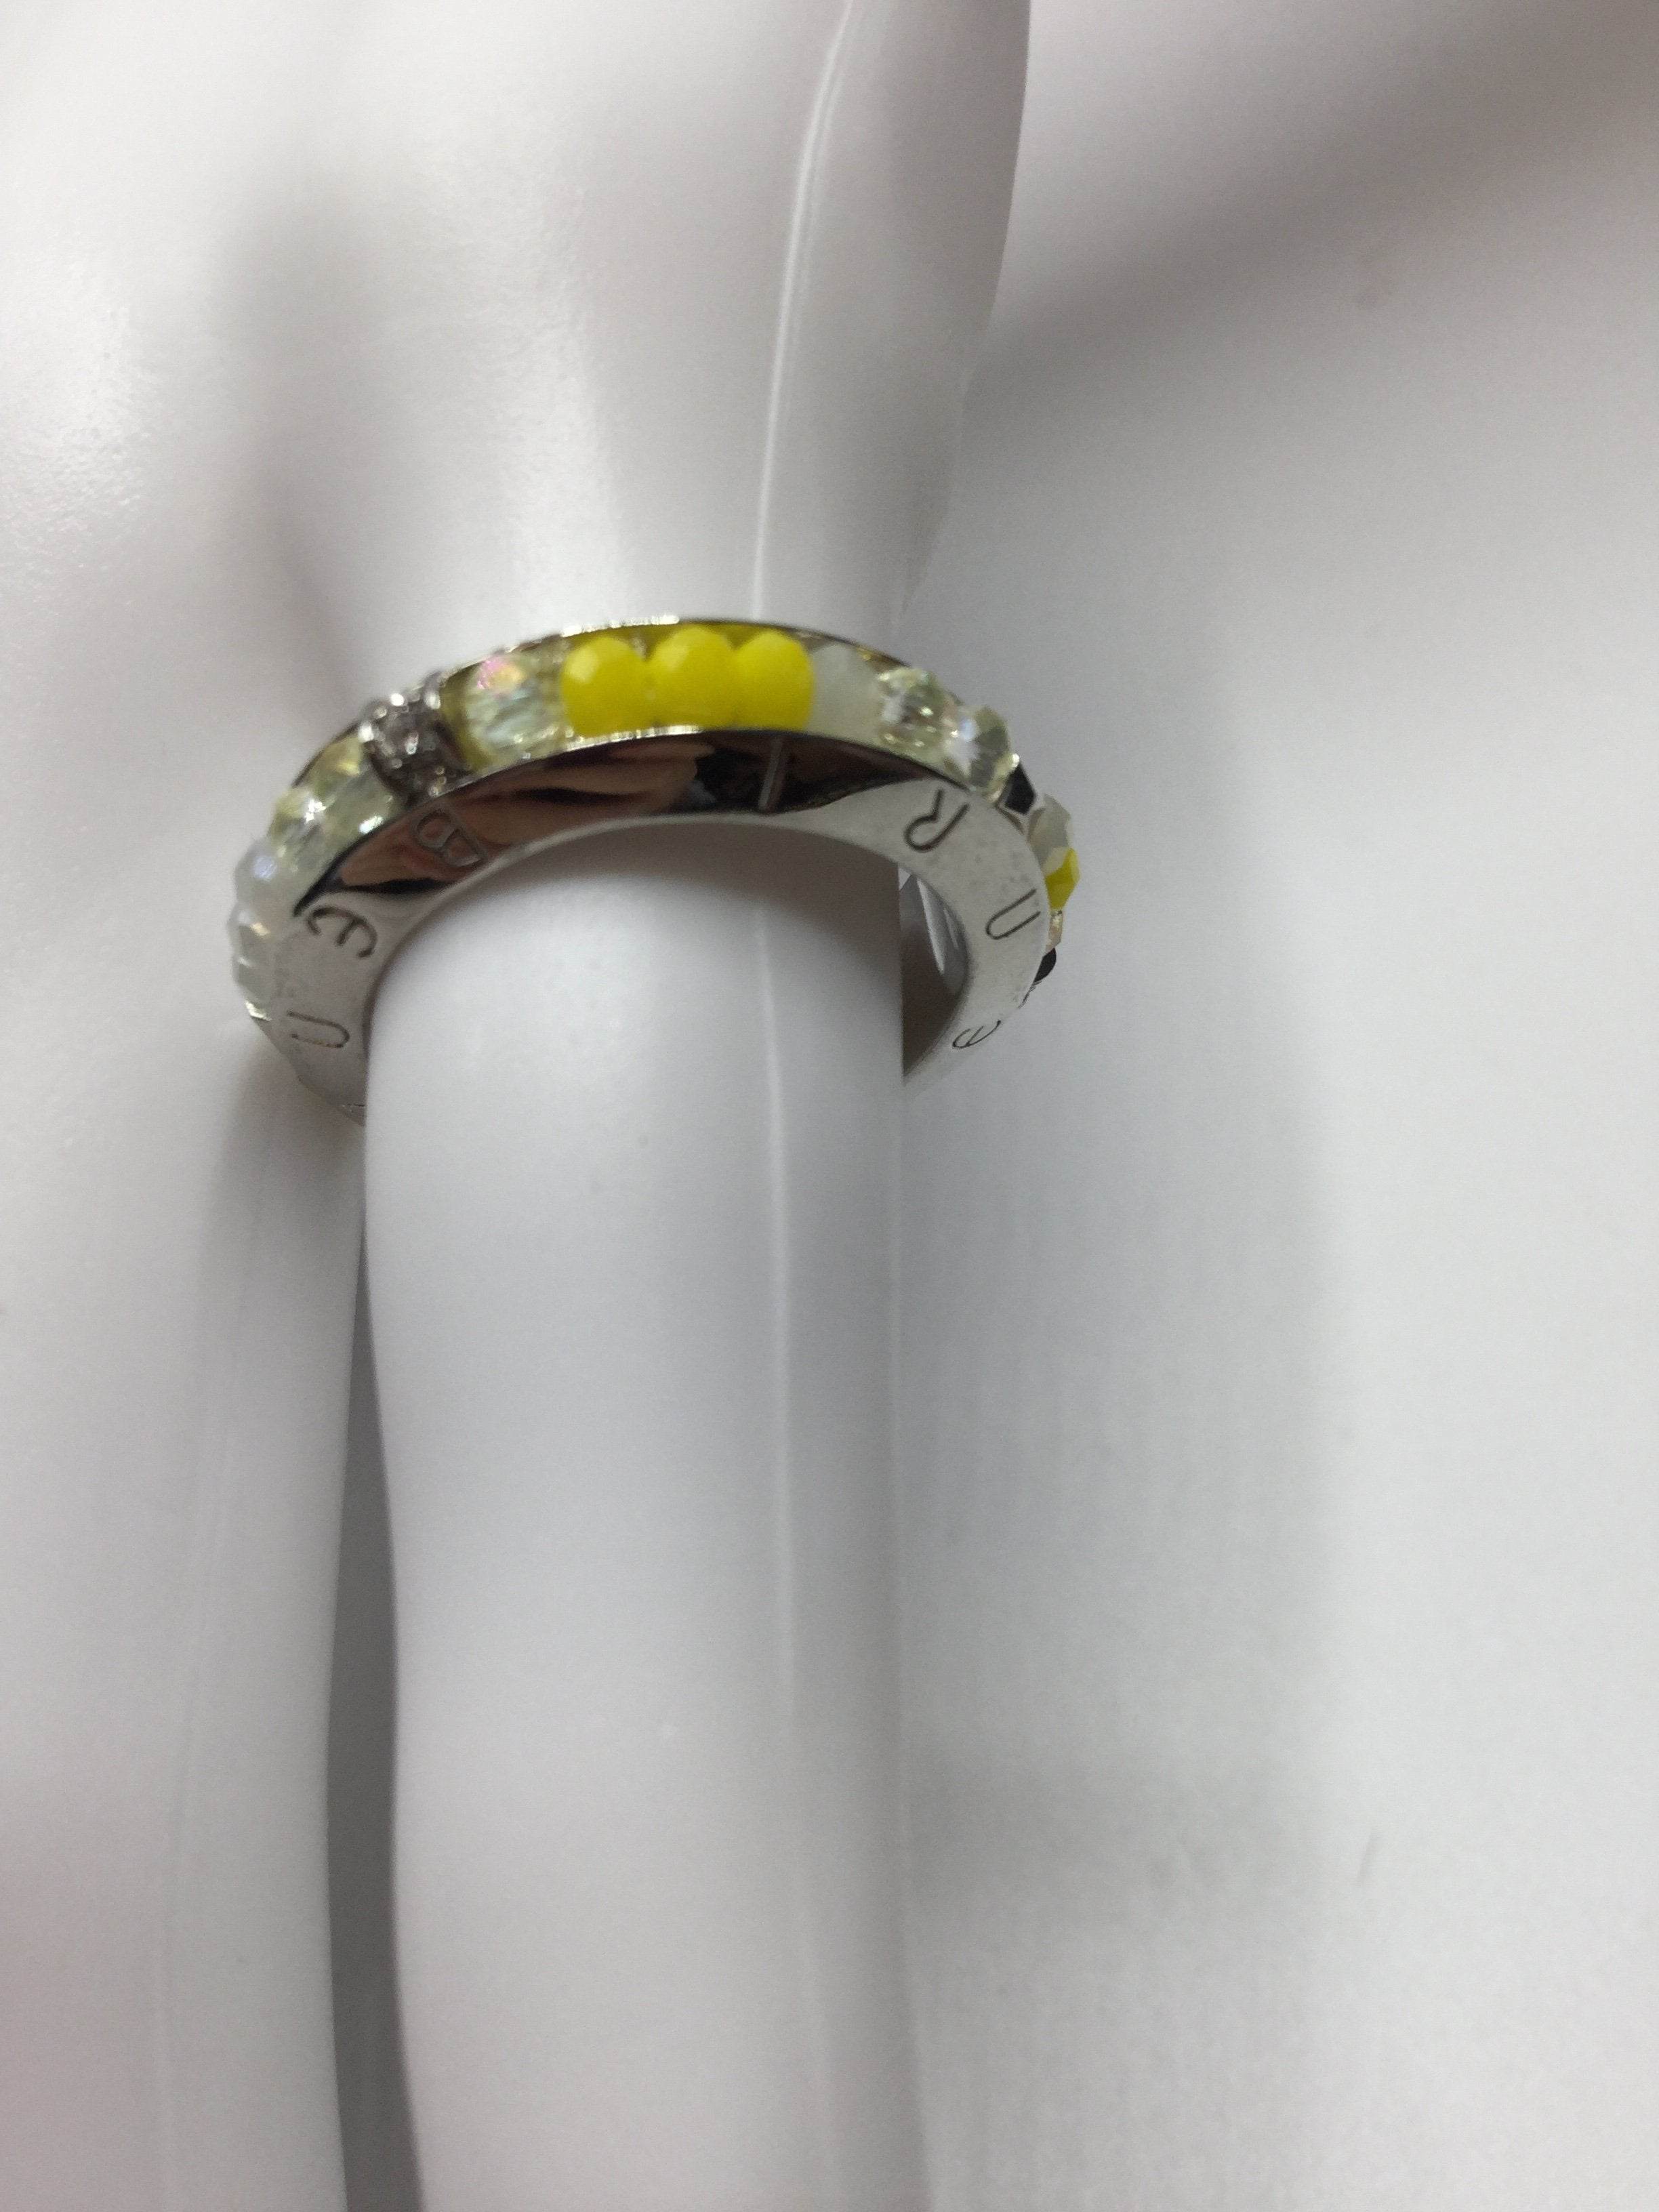 HENRI BENDEL RING SIZE:7 - <P>HENRI BENDEL YELLOW, CLEAR, WHITE AND SILVER BEADED BAND RING<BR> SIZE 7</P>